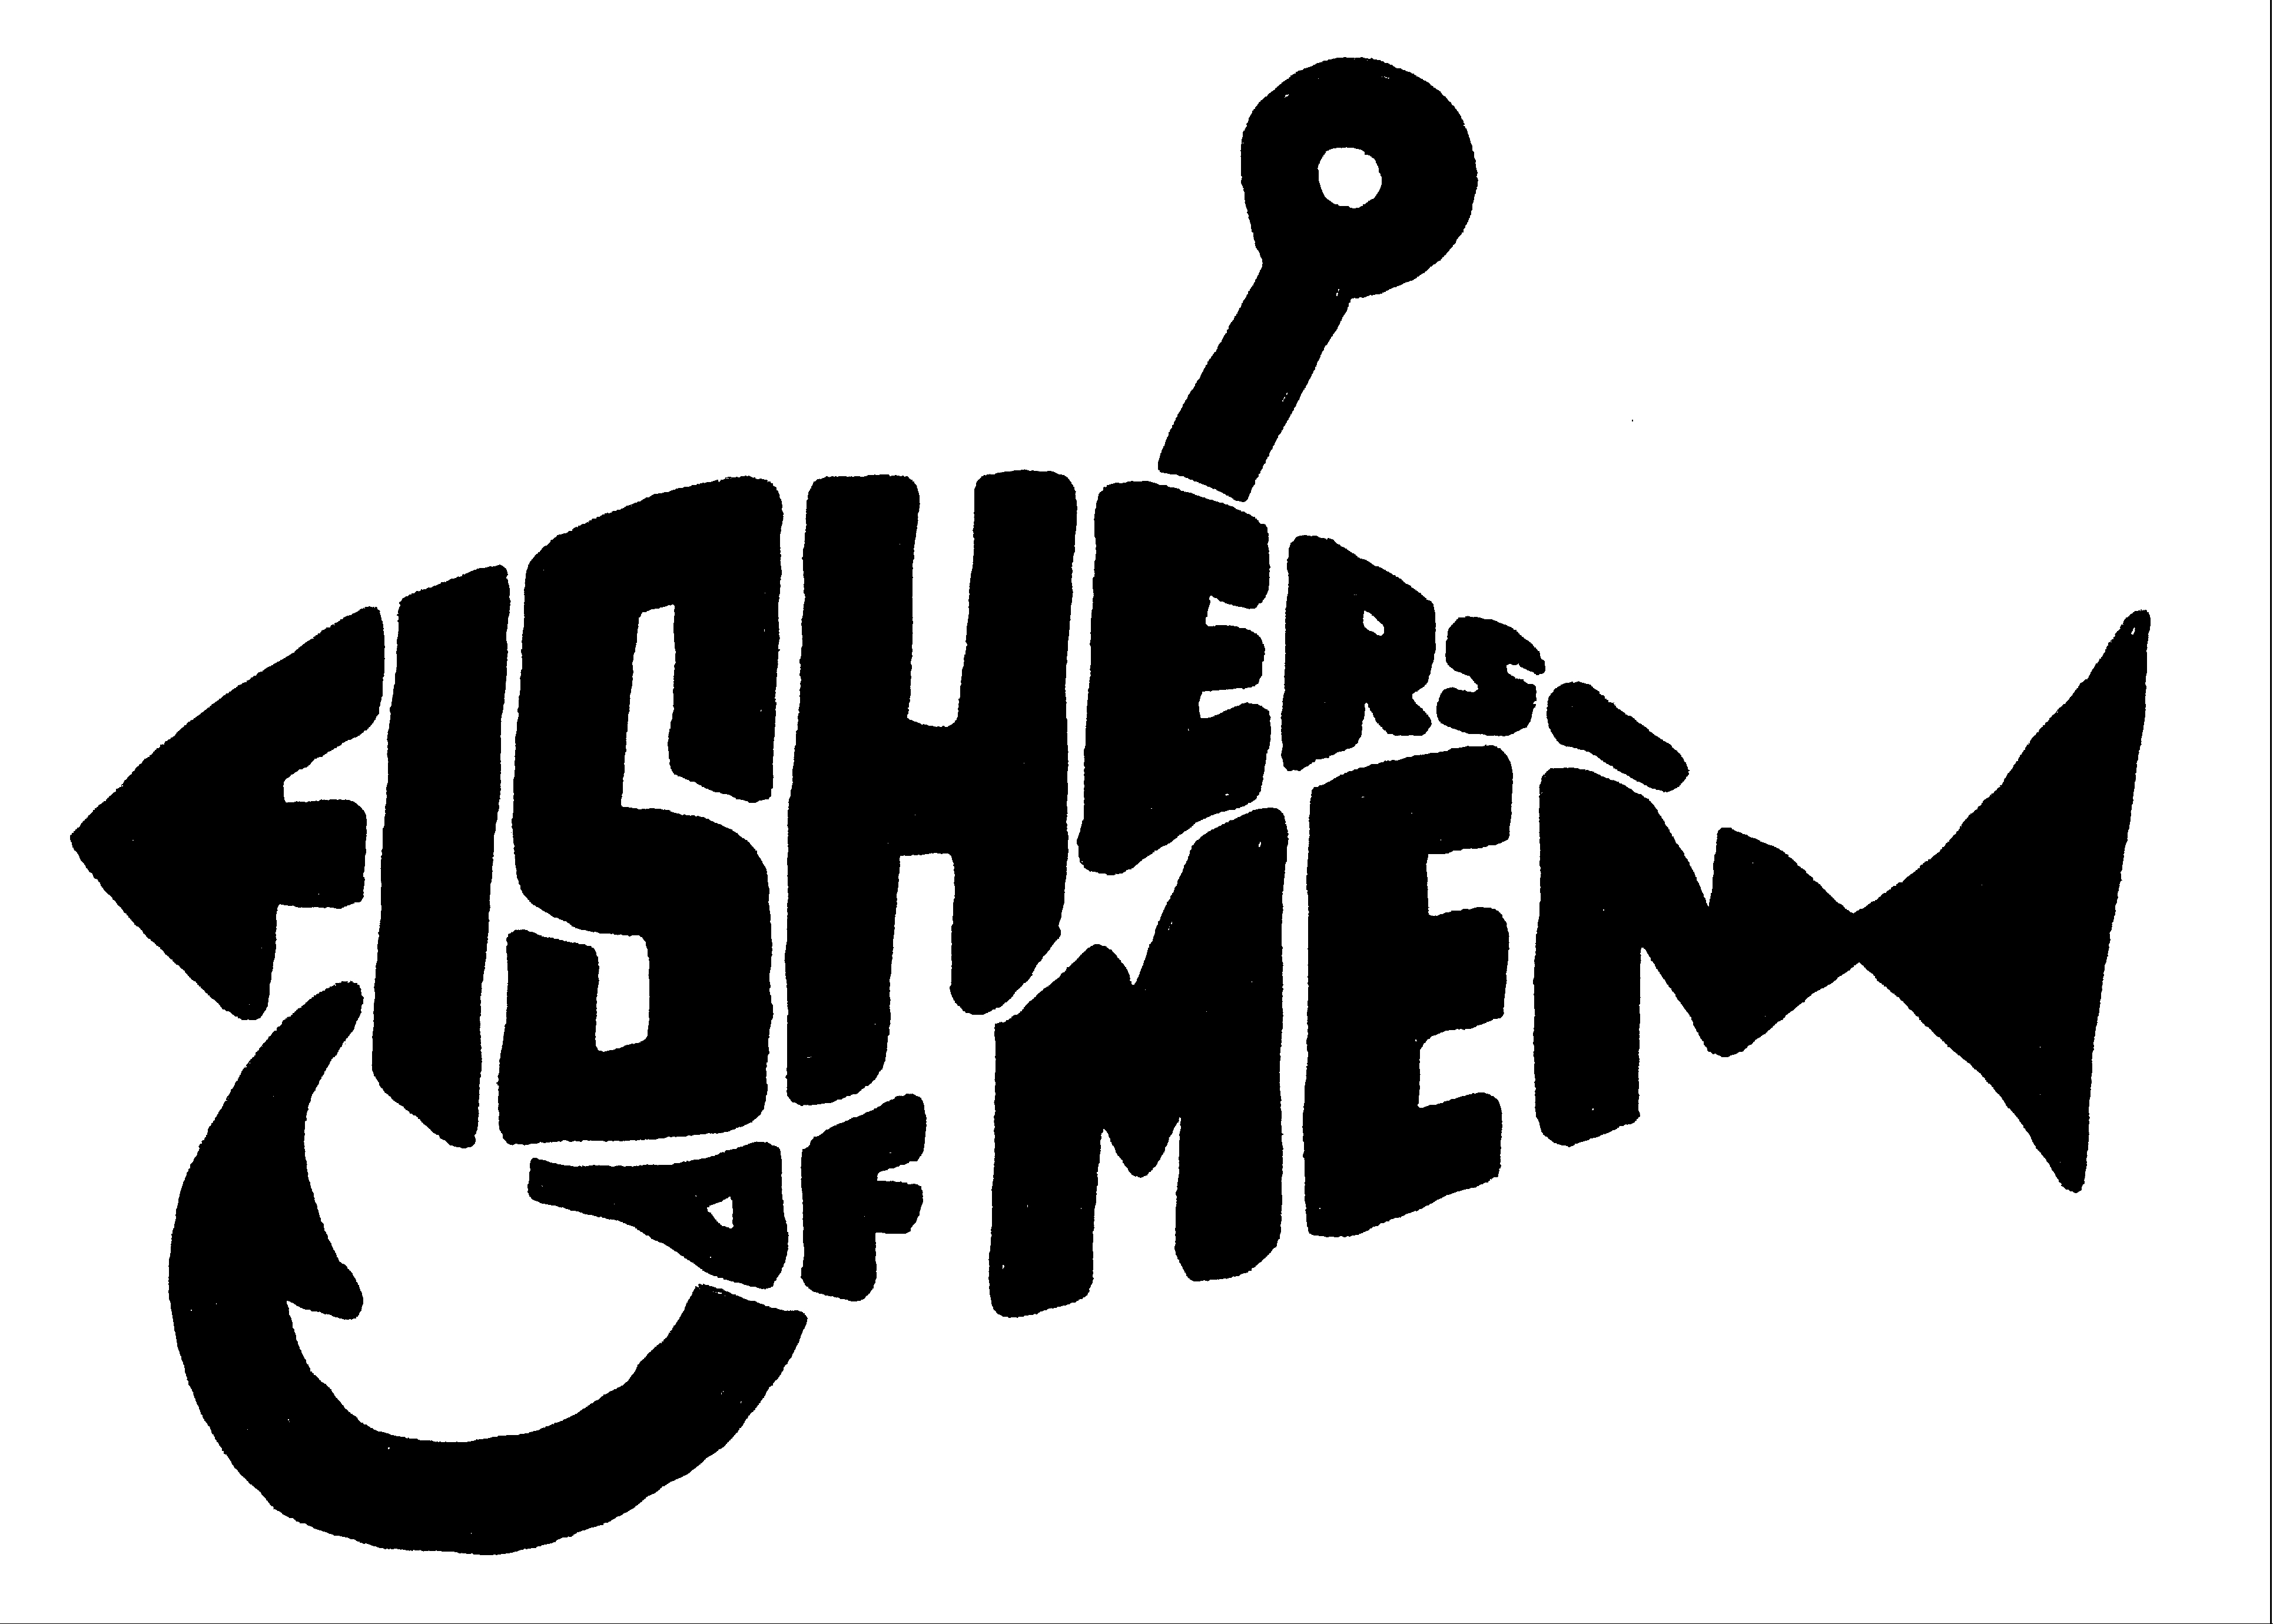 fishers of men clipart .